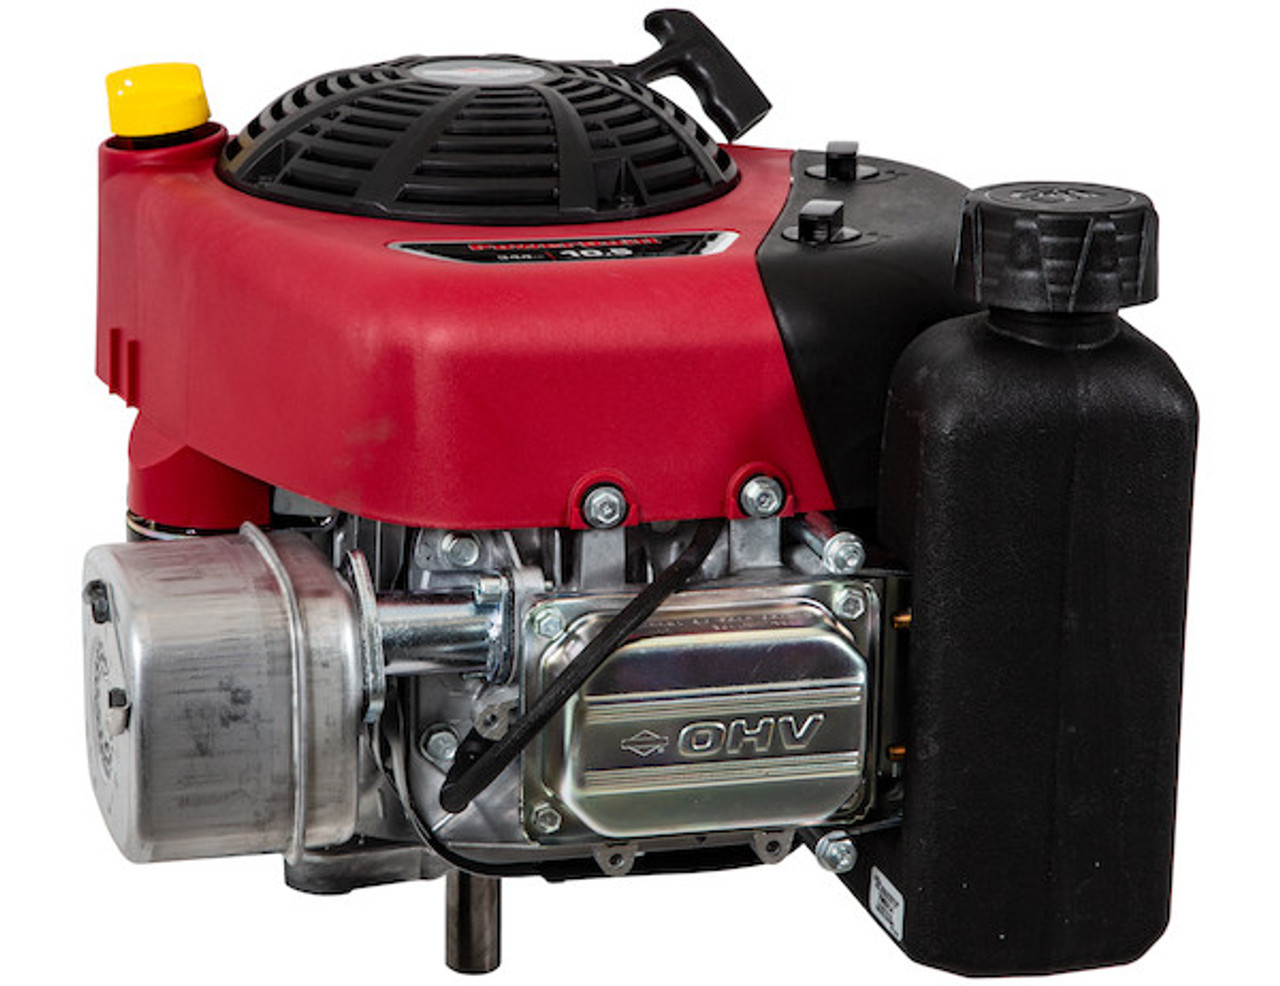 3006887 BUYERS SALTDOGG 10.5 HP BRIGGS & STRATTON GAS ENGINE 3 Paris Supply ParisSupply